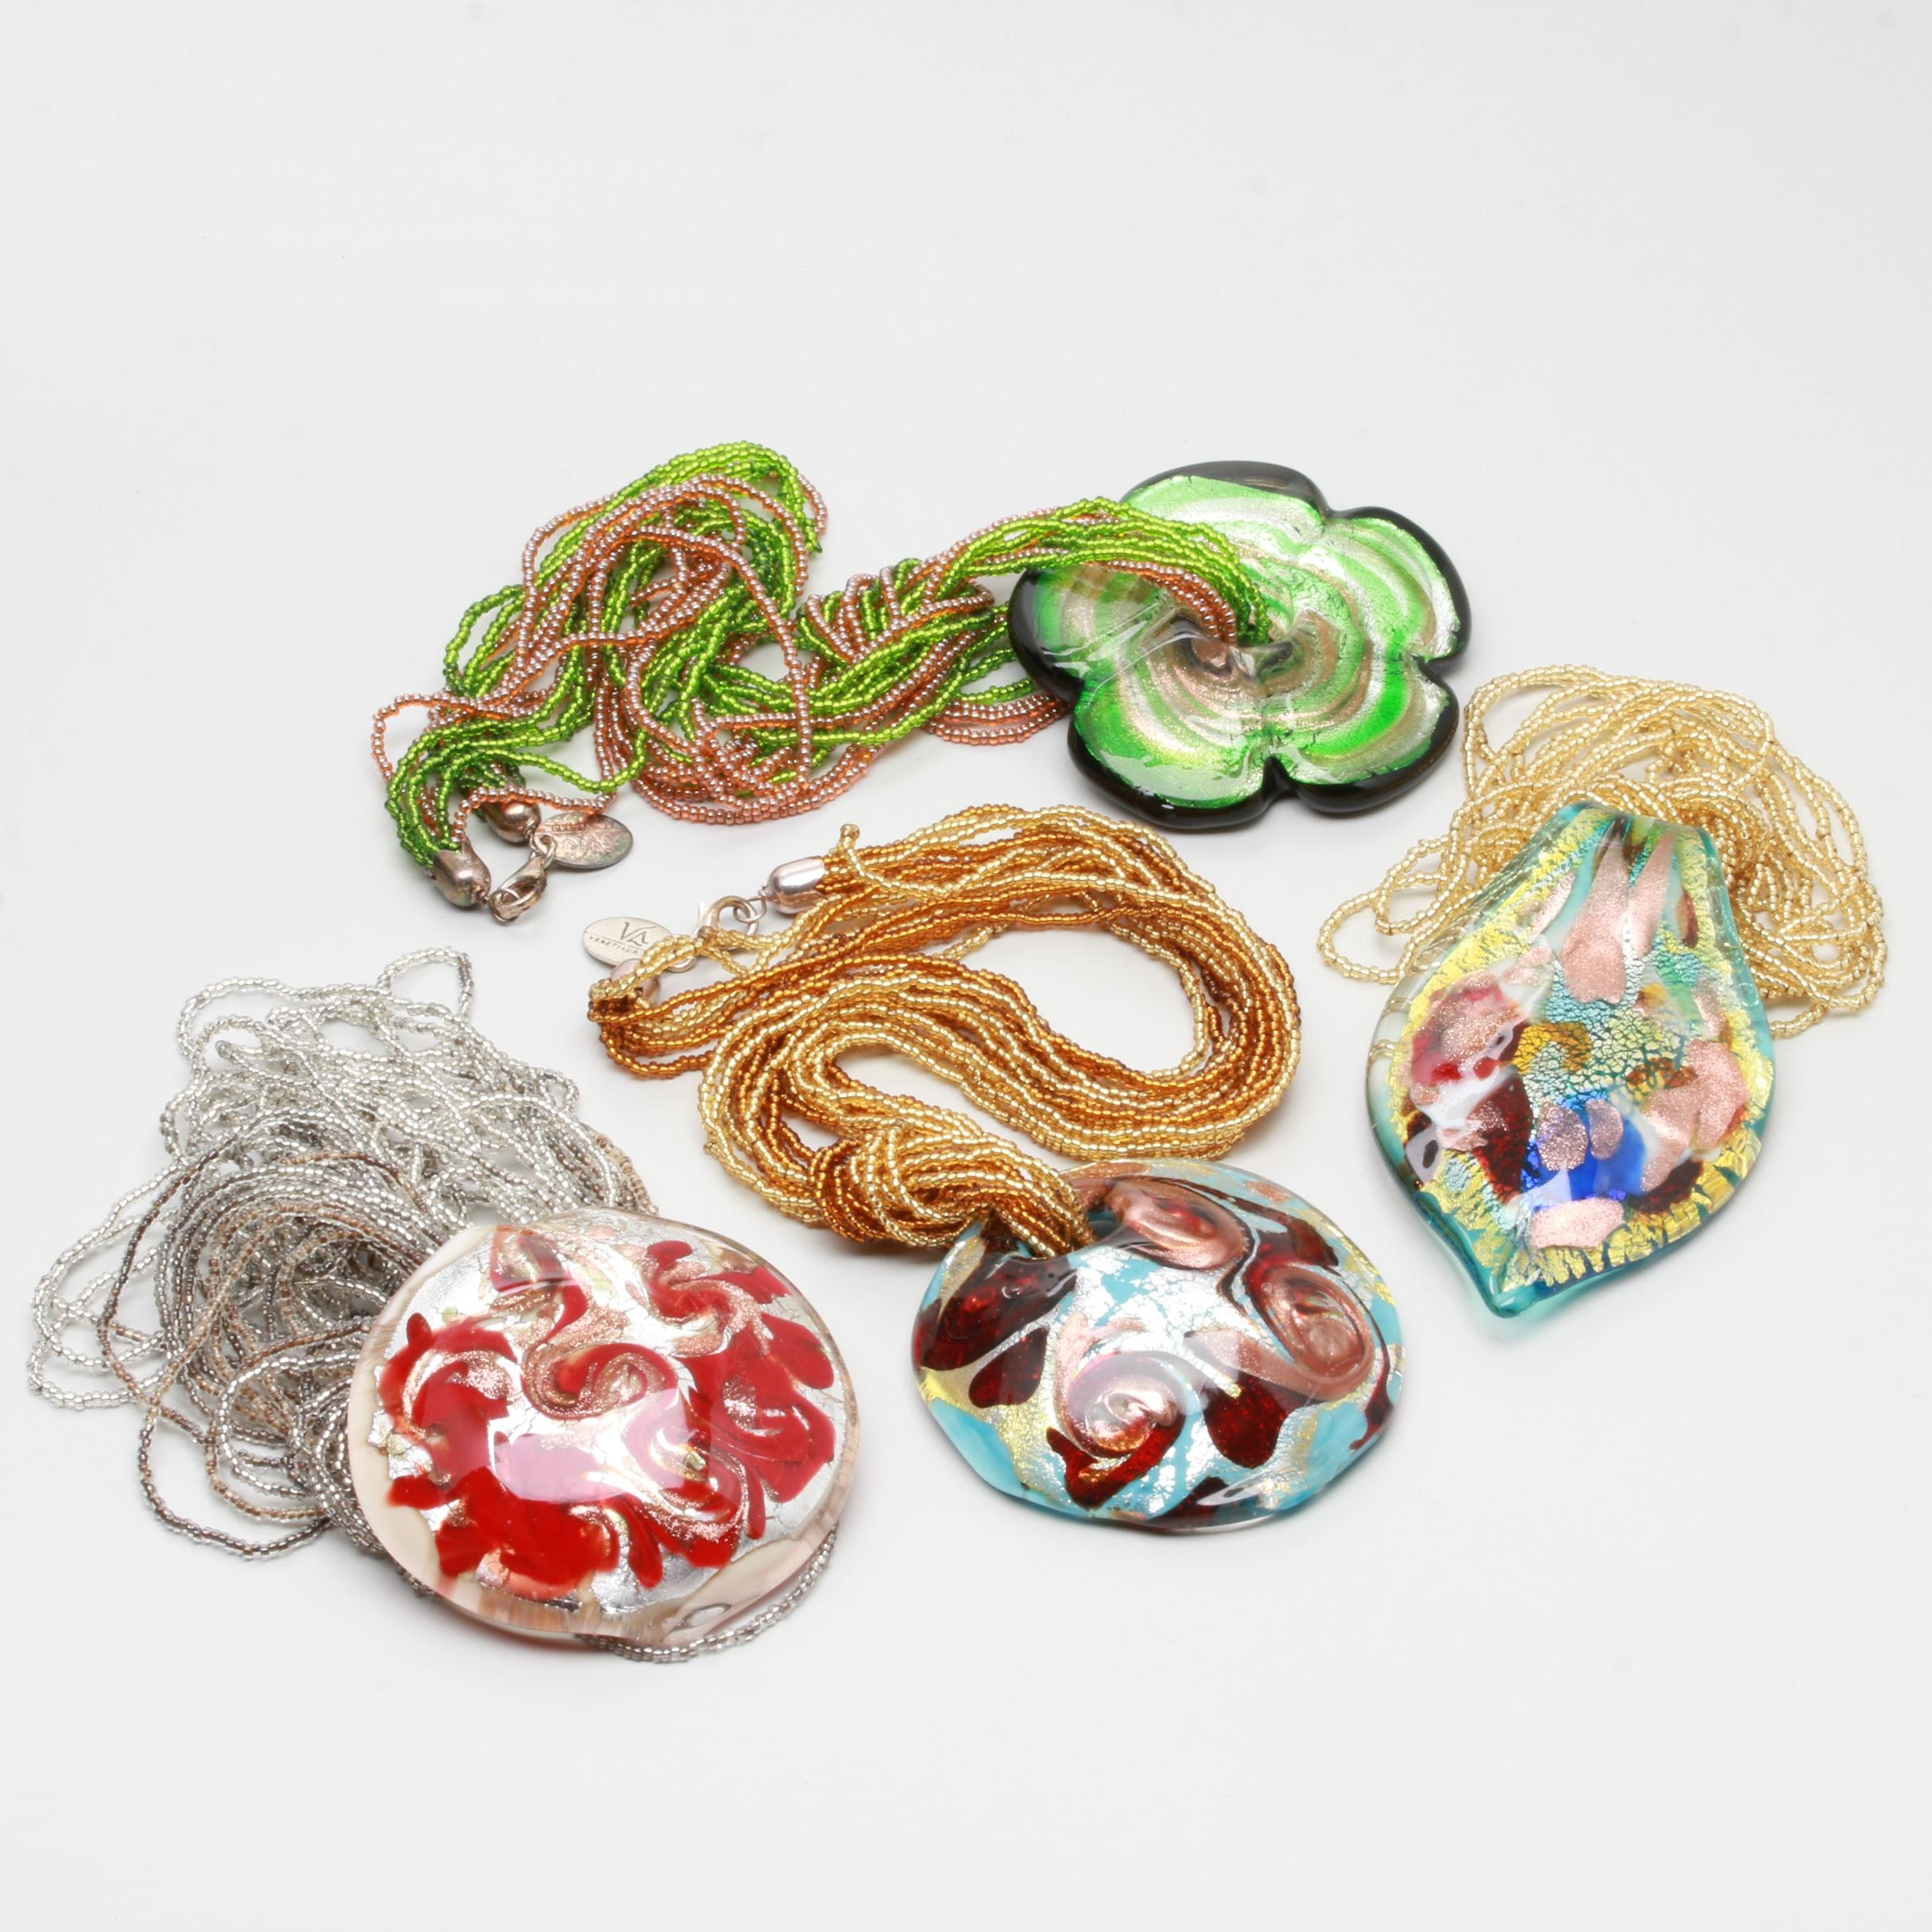 Dichroic Glass Pendant and Plastic Seed Bead Necklaces